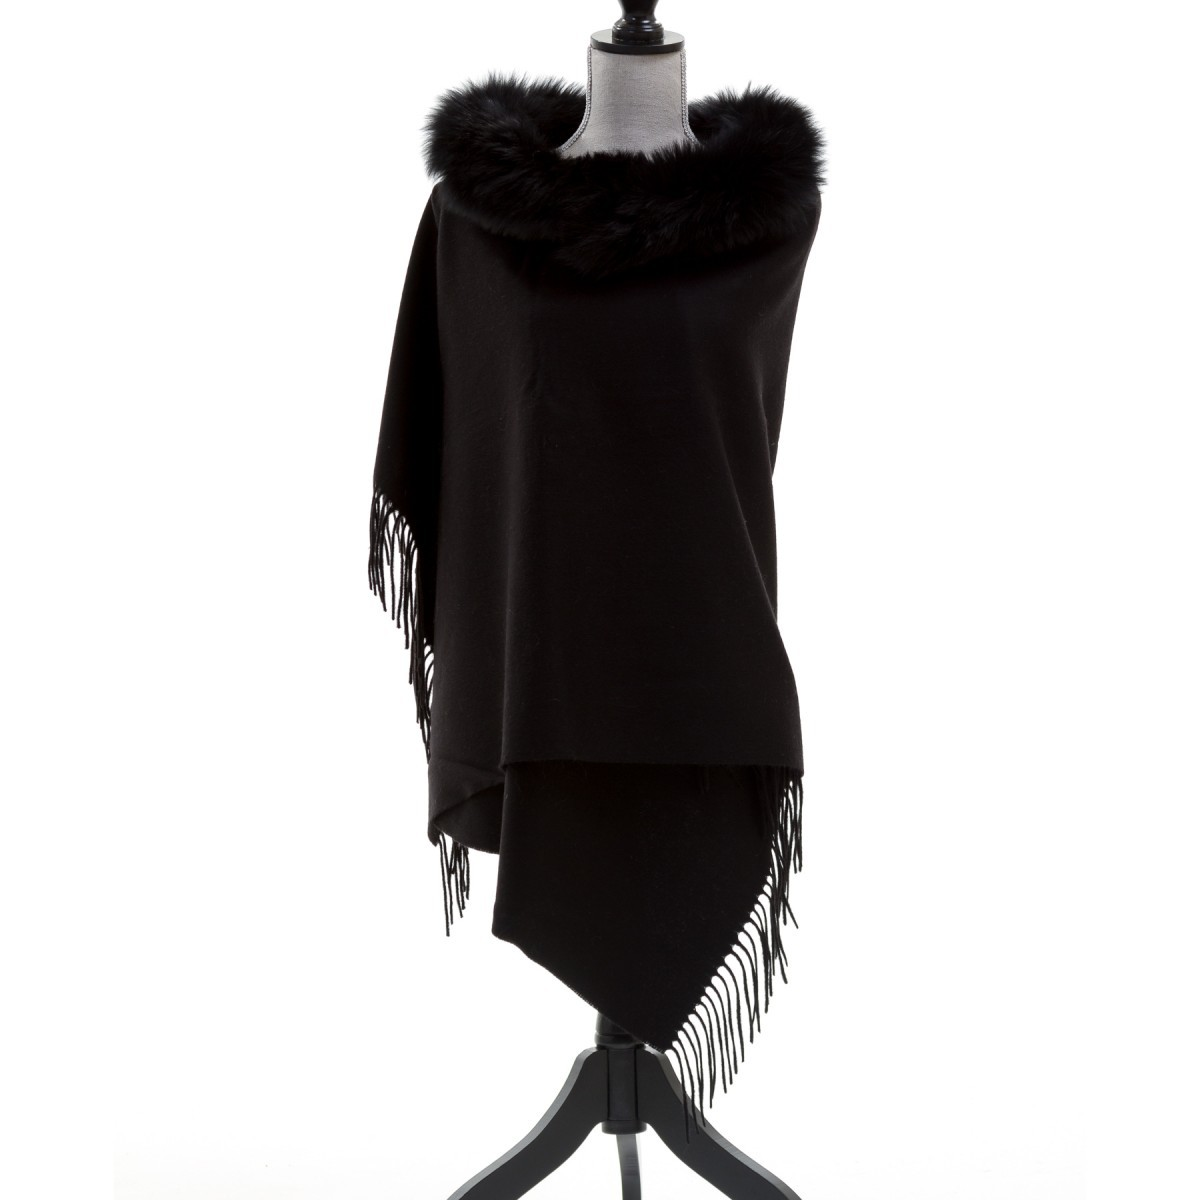 Wool Shawl w/ Fox Fur Trim $355.00